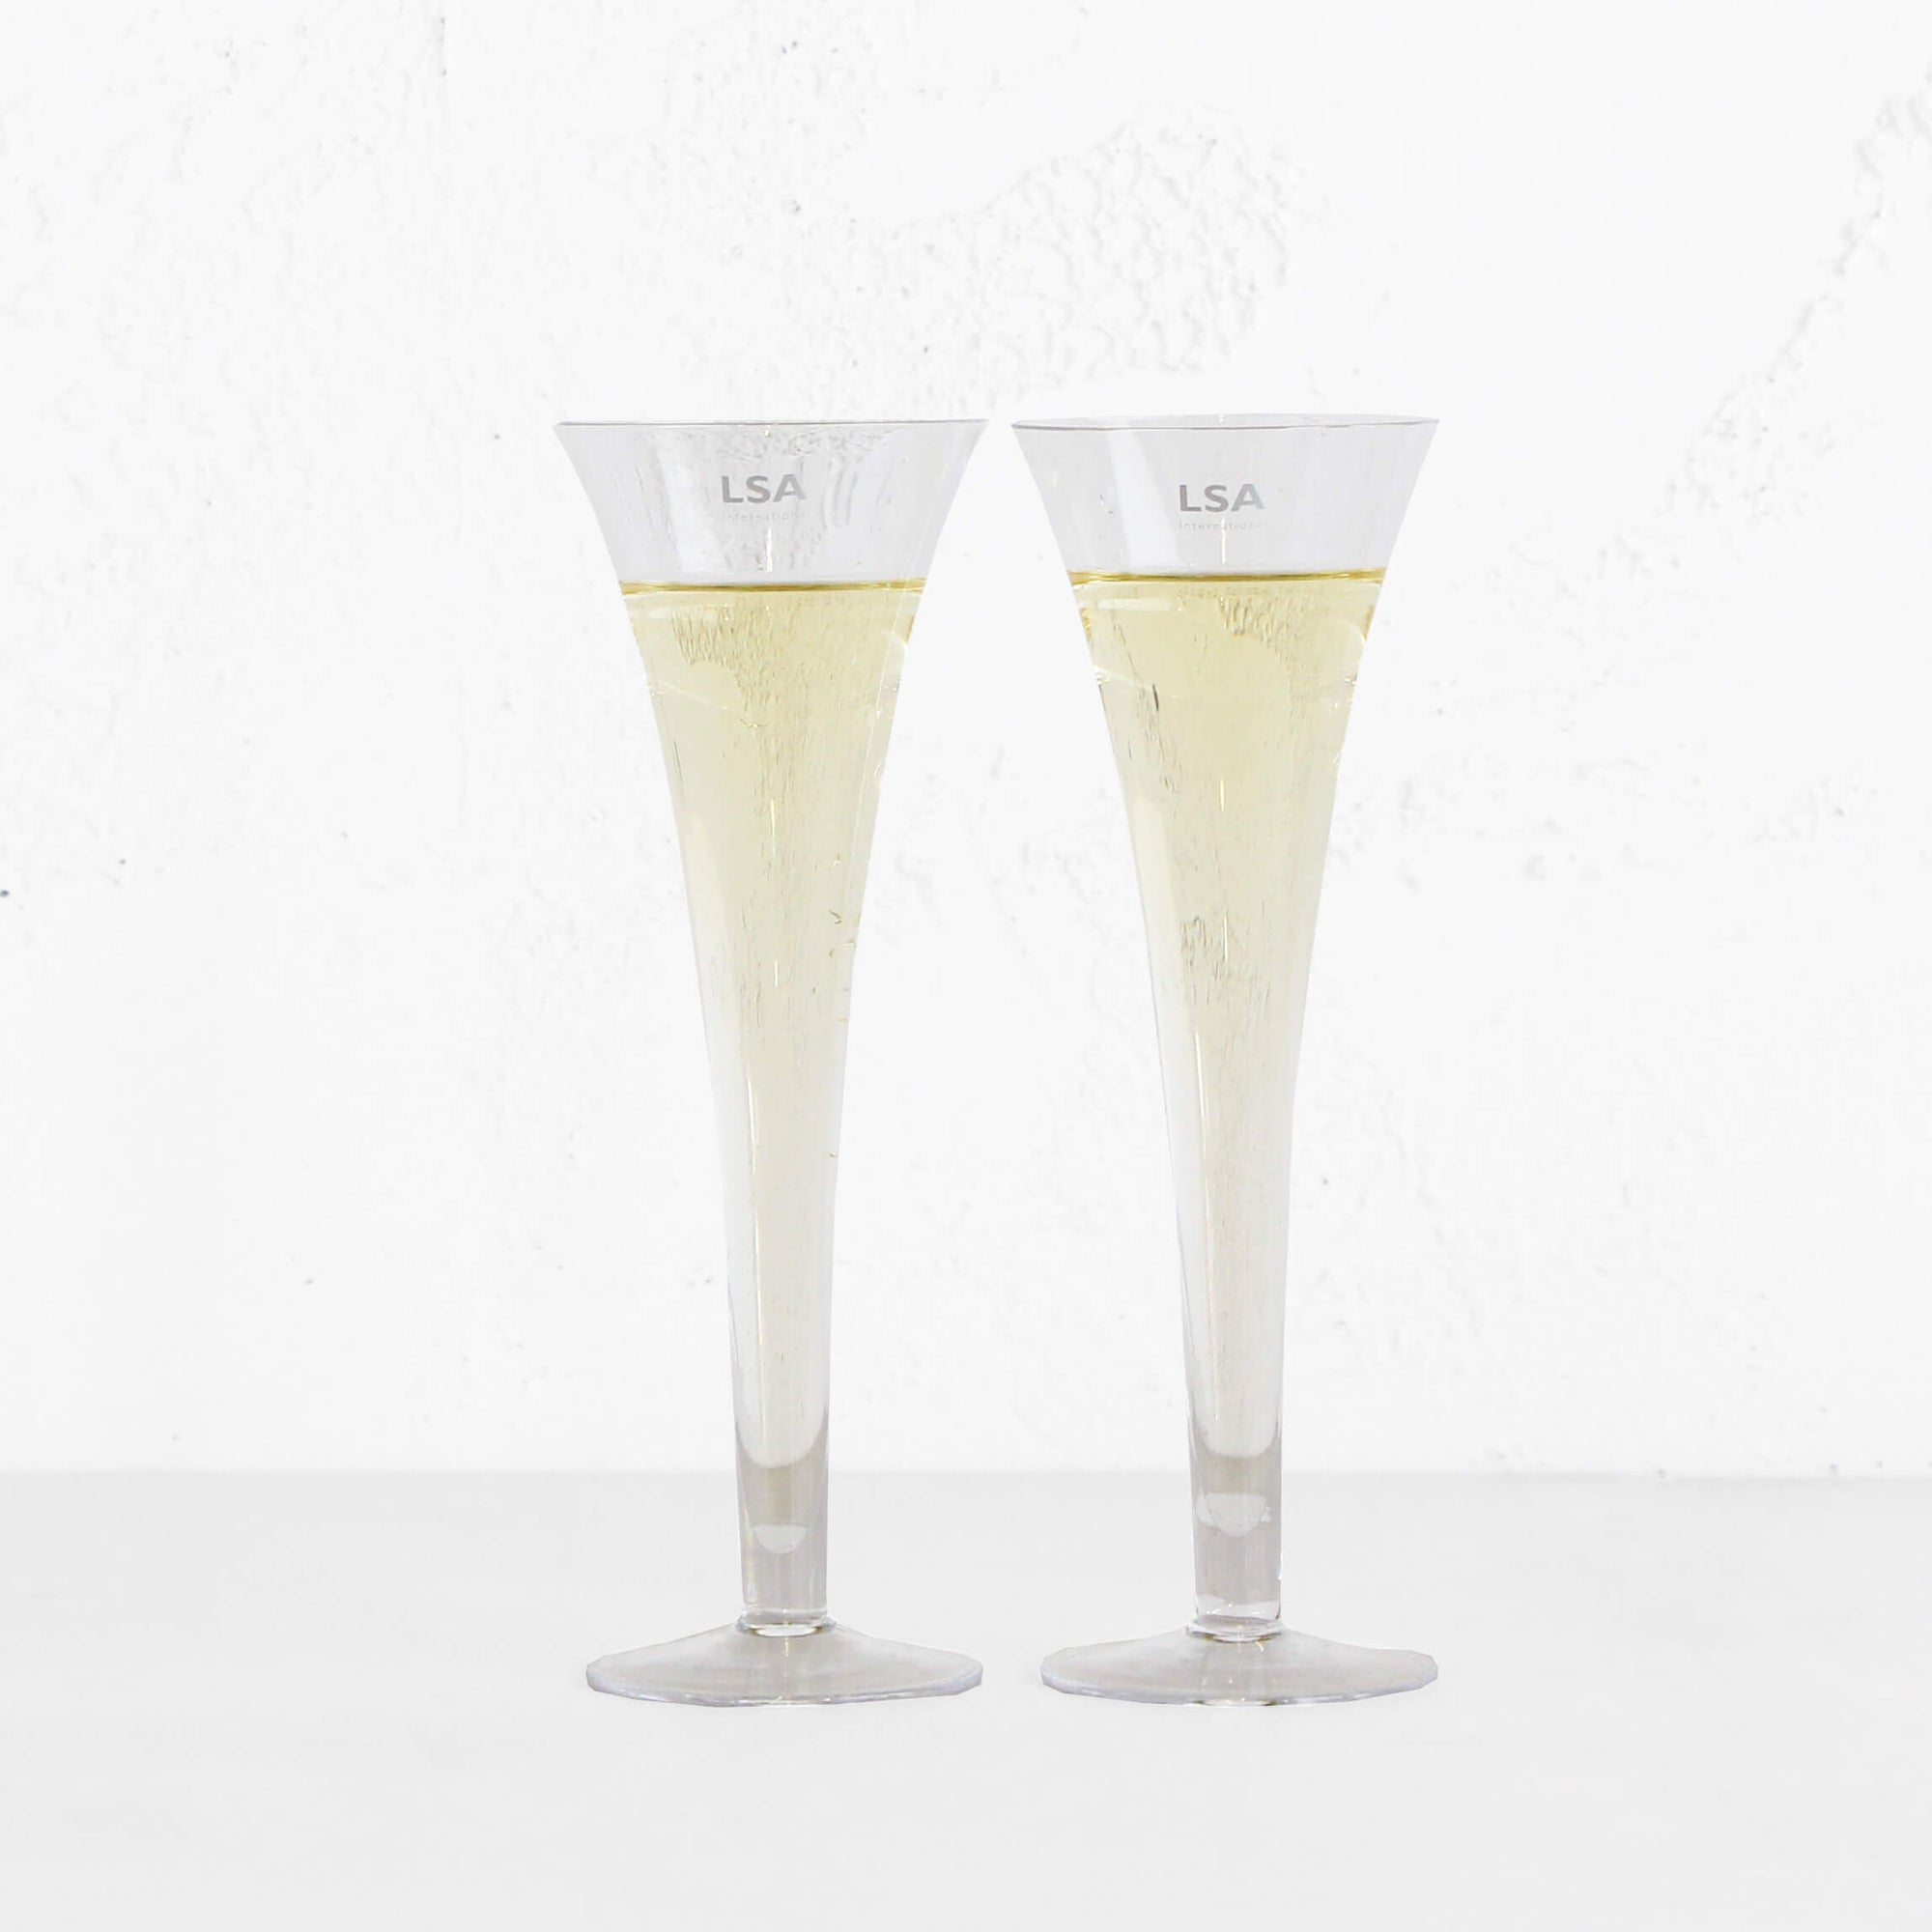 LSA BAR HOLLOW STEM CHAMPAGNE FLUTES  |  BOXED SET OF 2 GLASSES